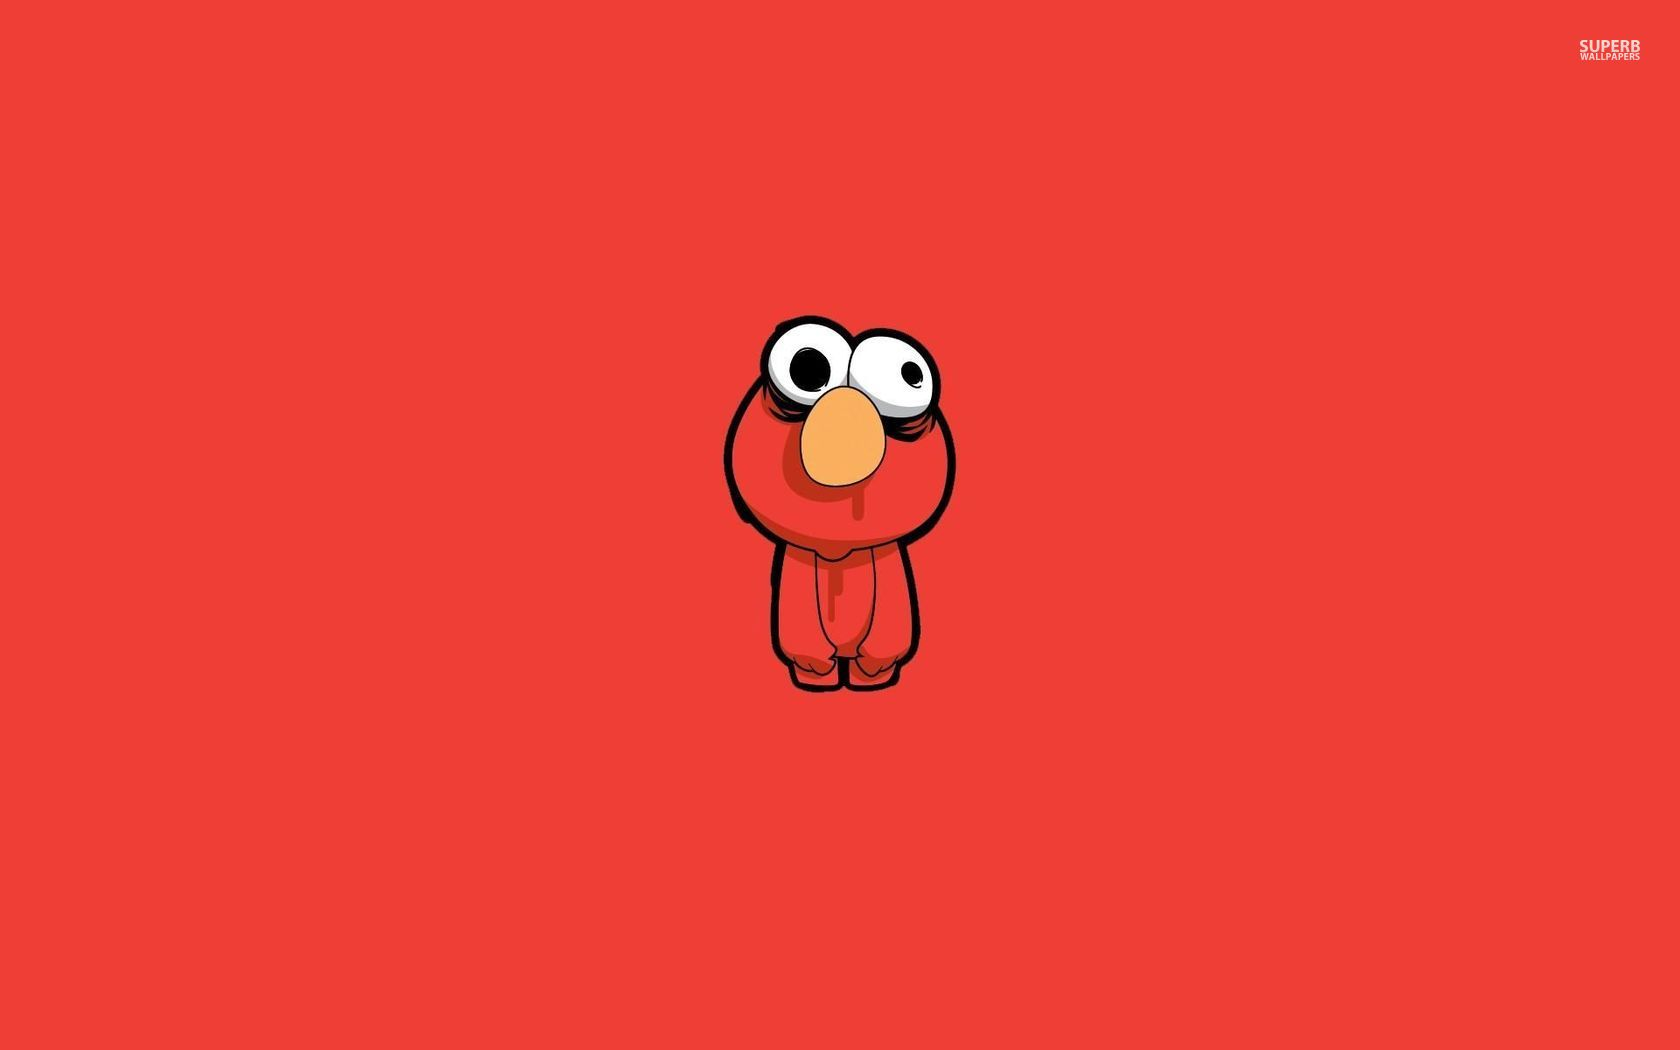 Elmo High Resolution Wallpaper Download, Lue Nesmith